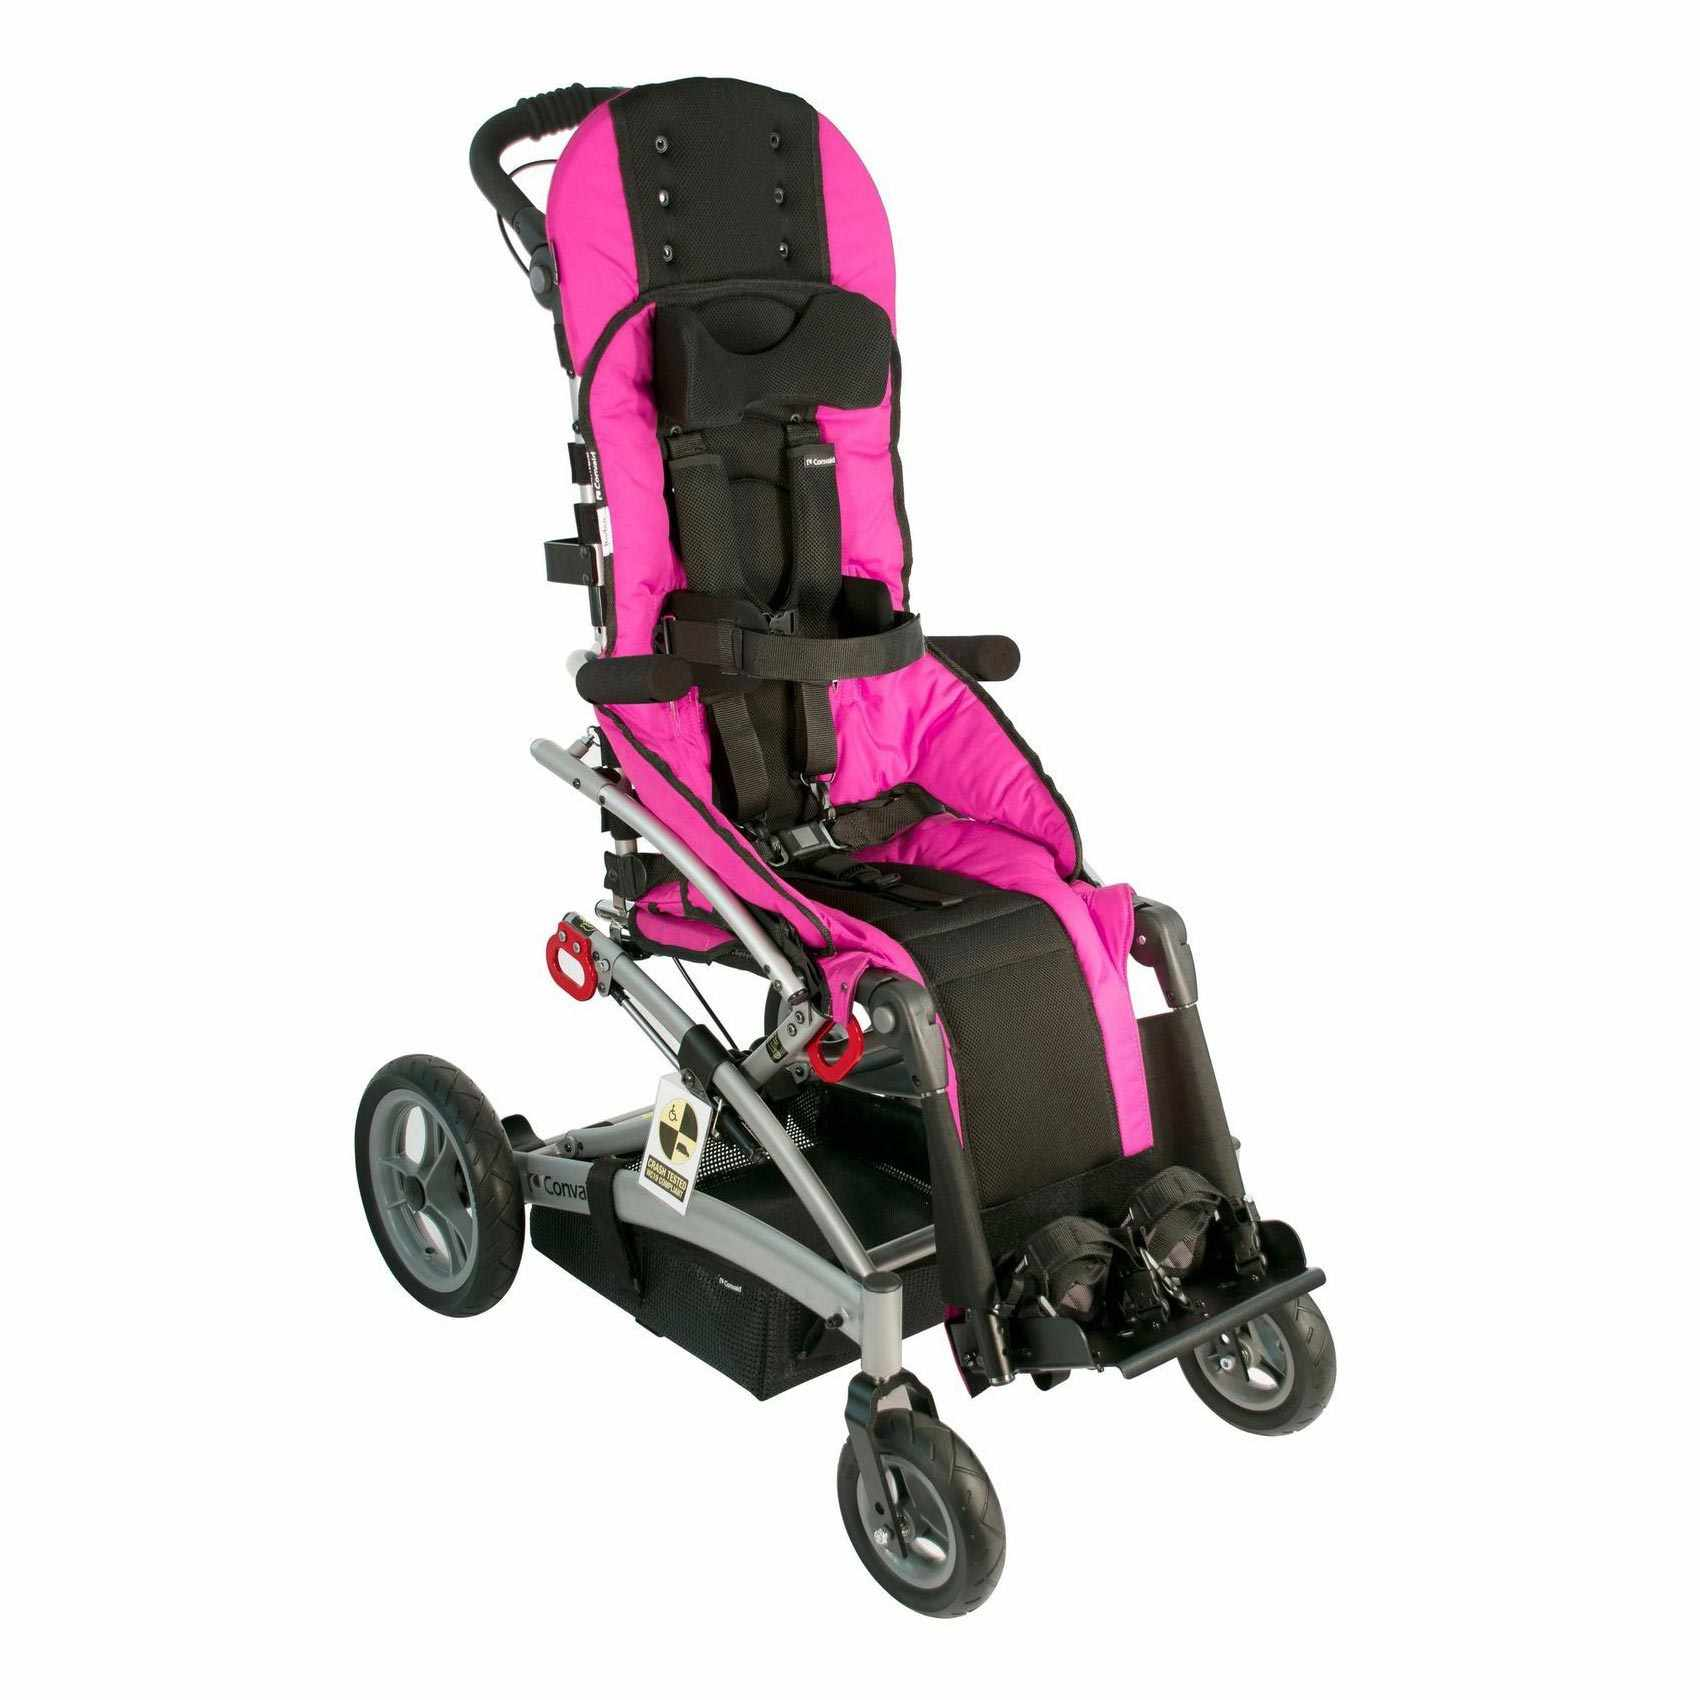 Convaid Rodeo tilt-in-space stroller